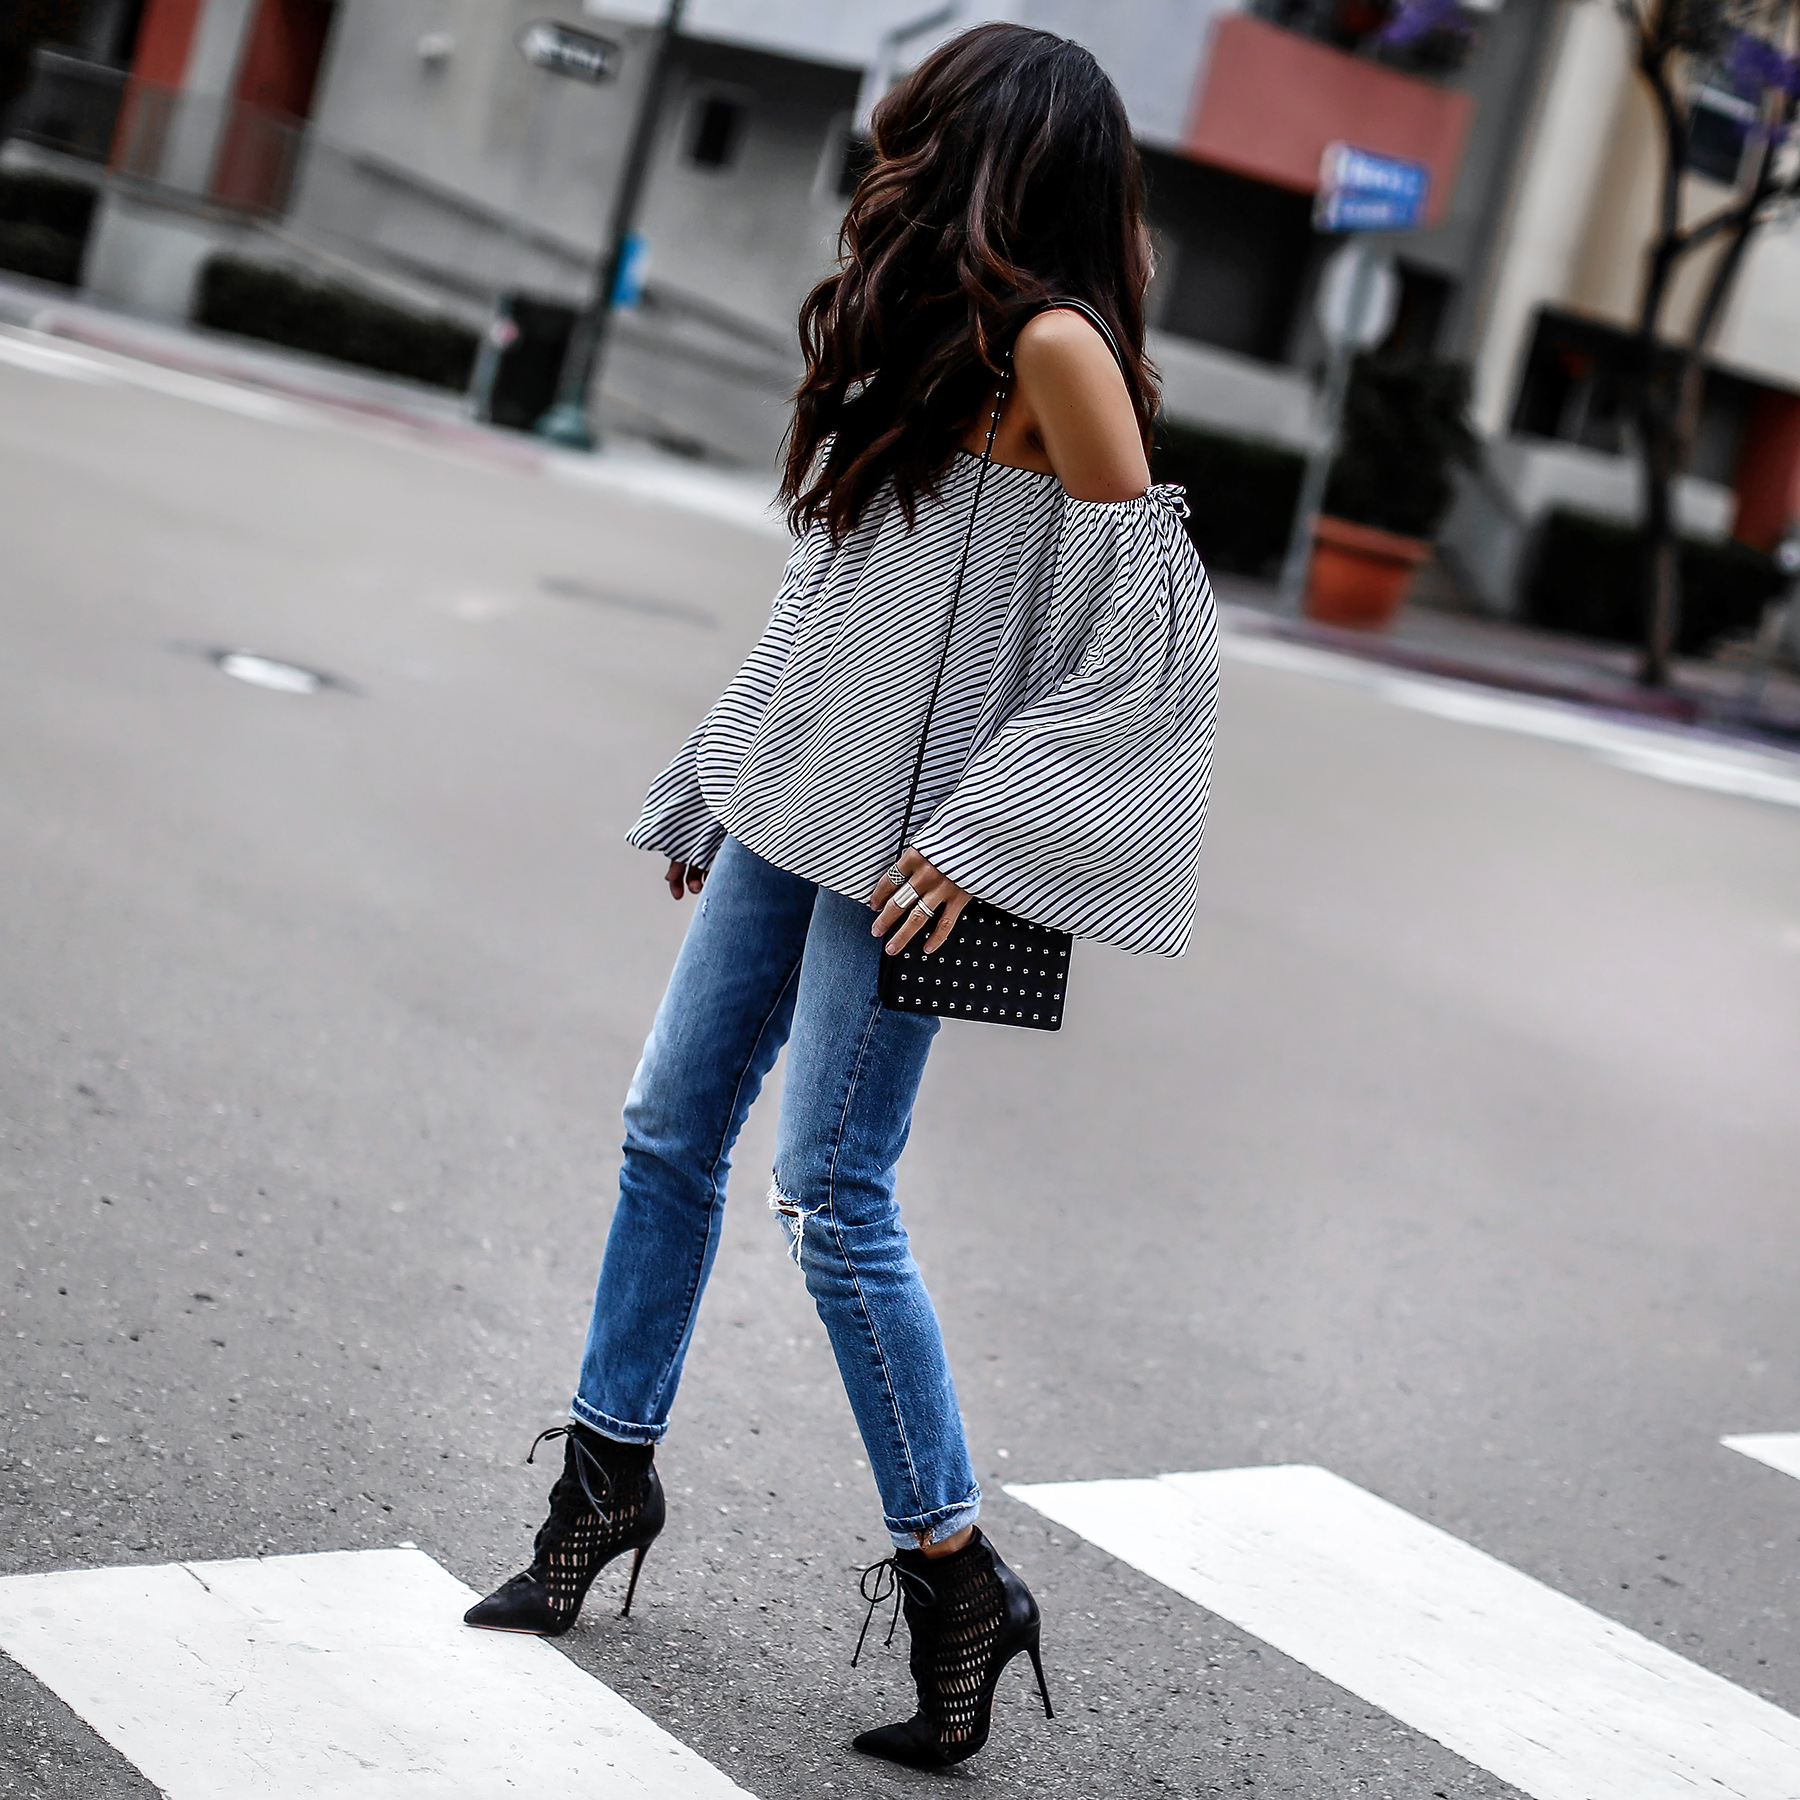 High_Rise_Distressed_Levis_Jeans_MLM_Striped_Off_The_Shoulder_Top_Alexander_Wang_Studded_Bag_Schutz_Lace_Up_Boots.jpg